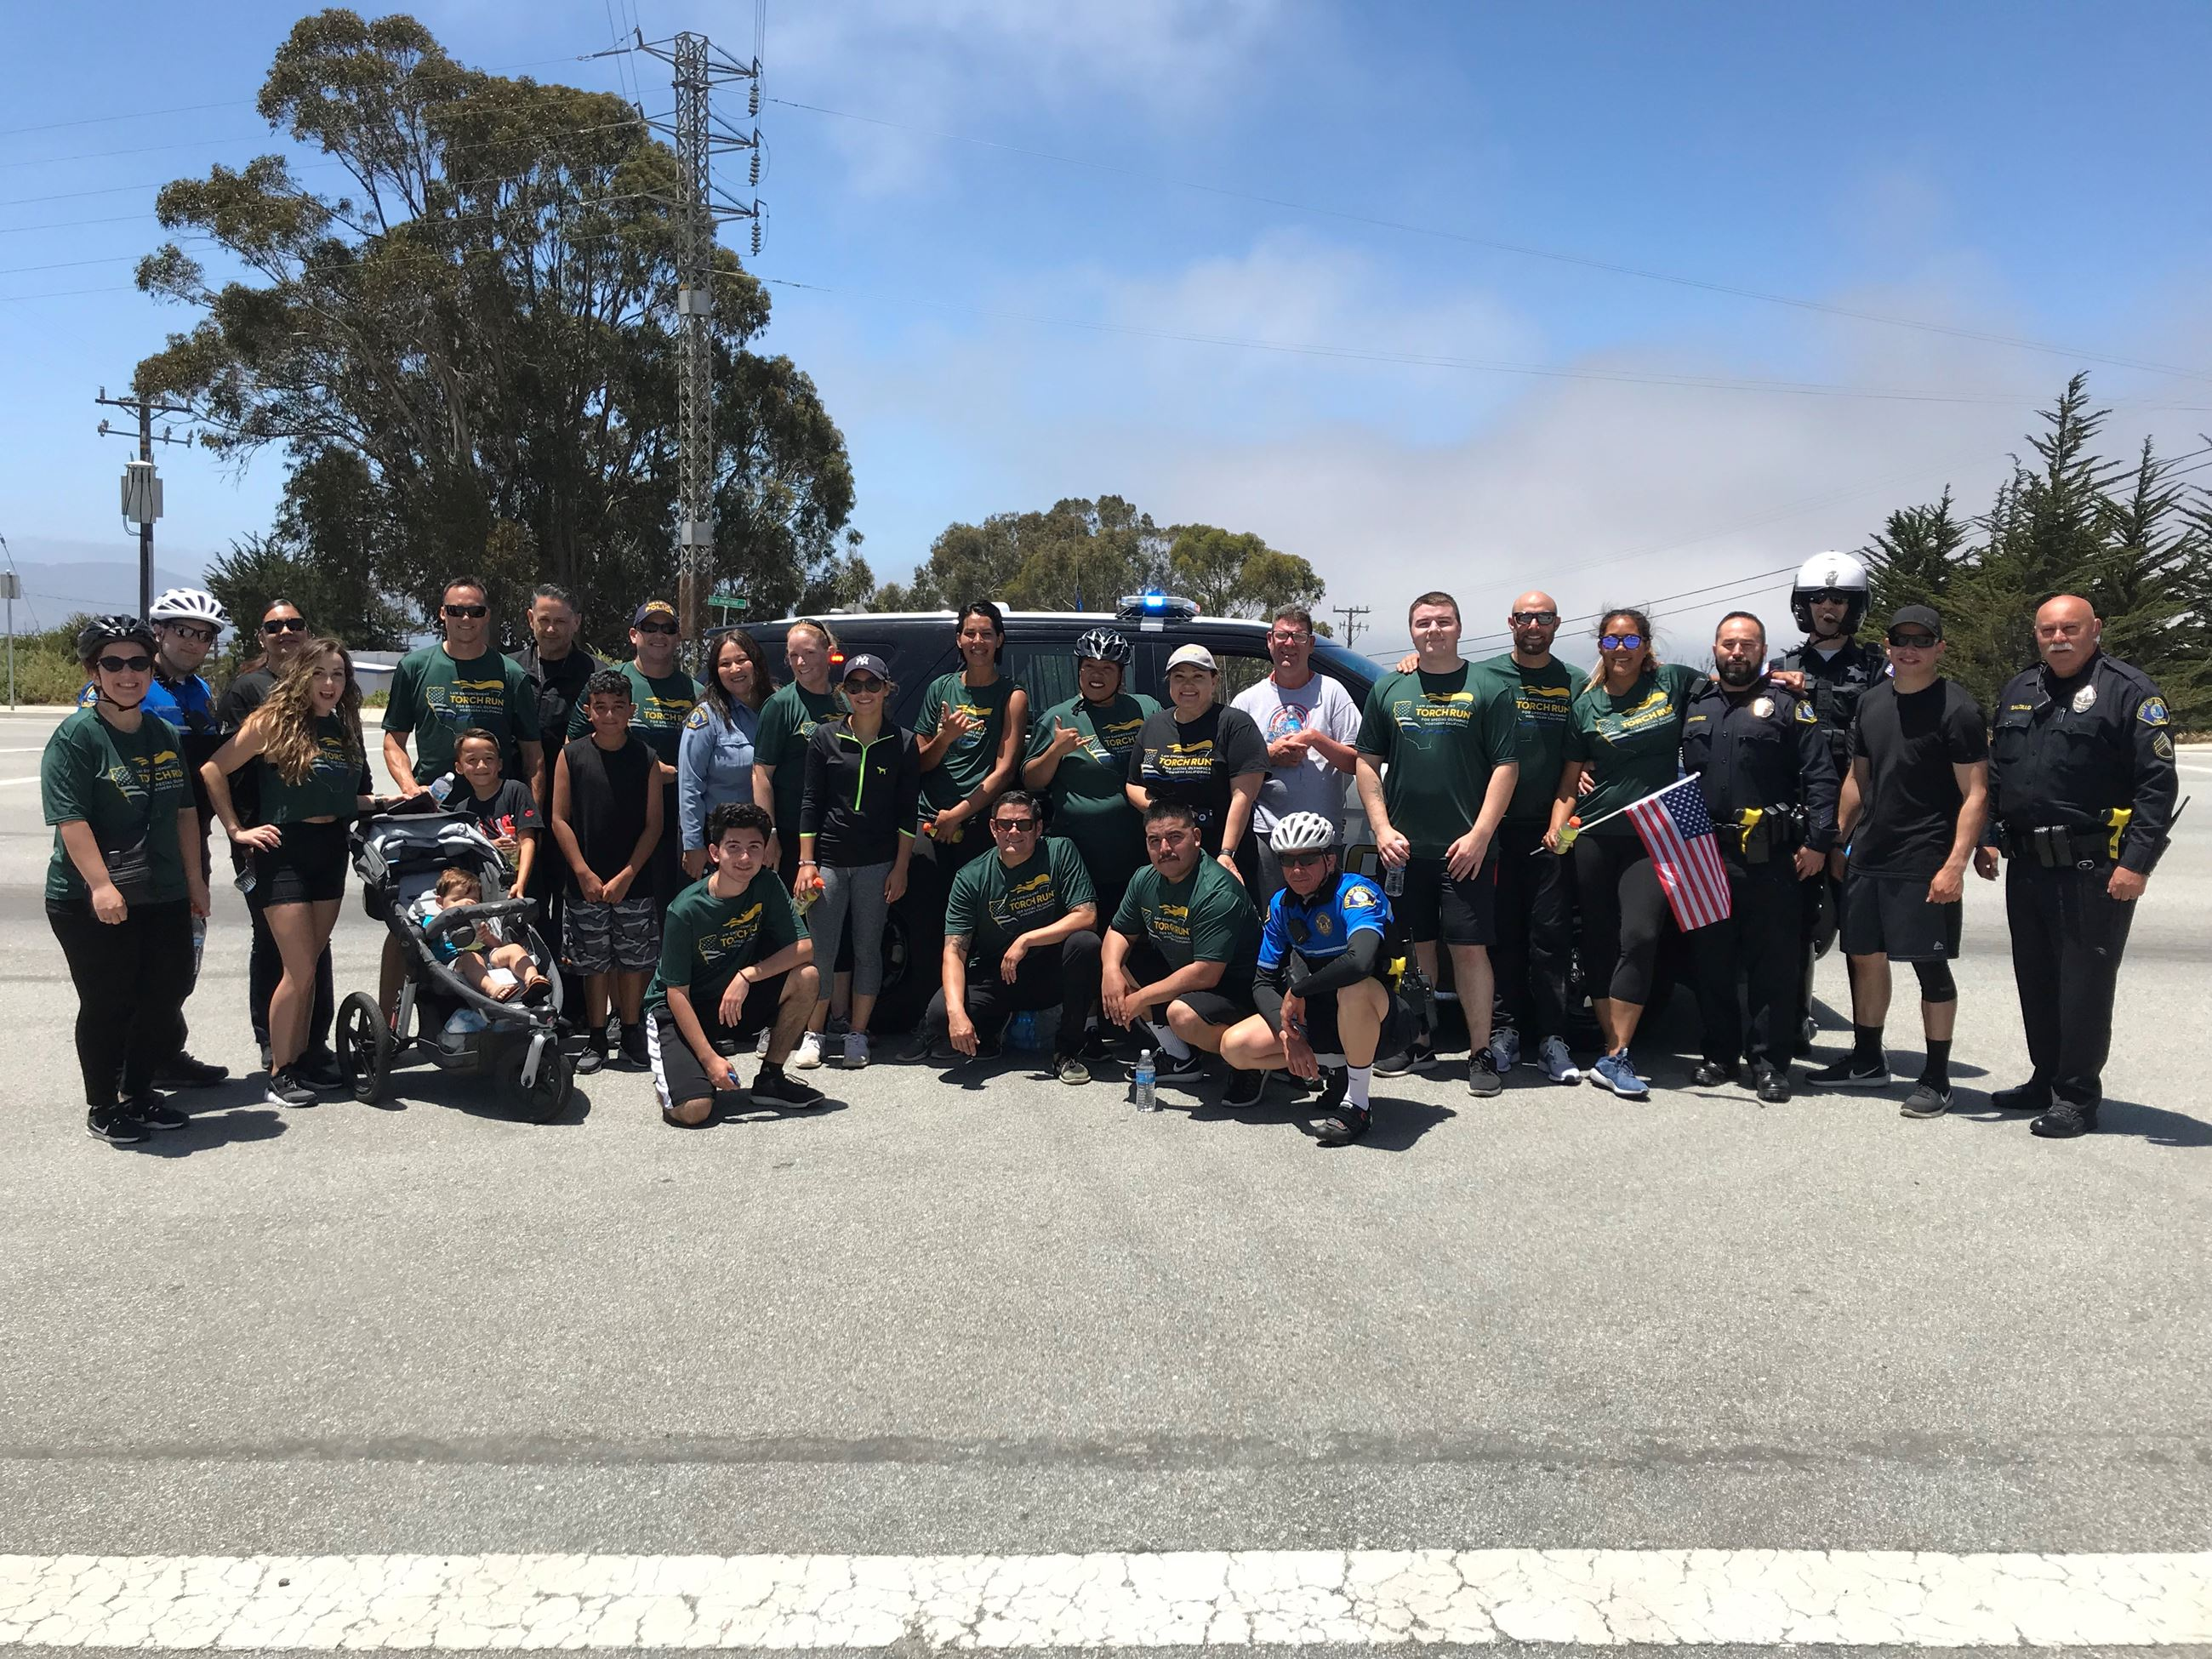 Participants of Torch Run 2018